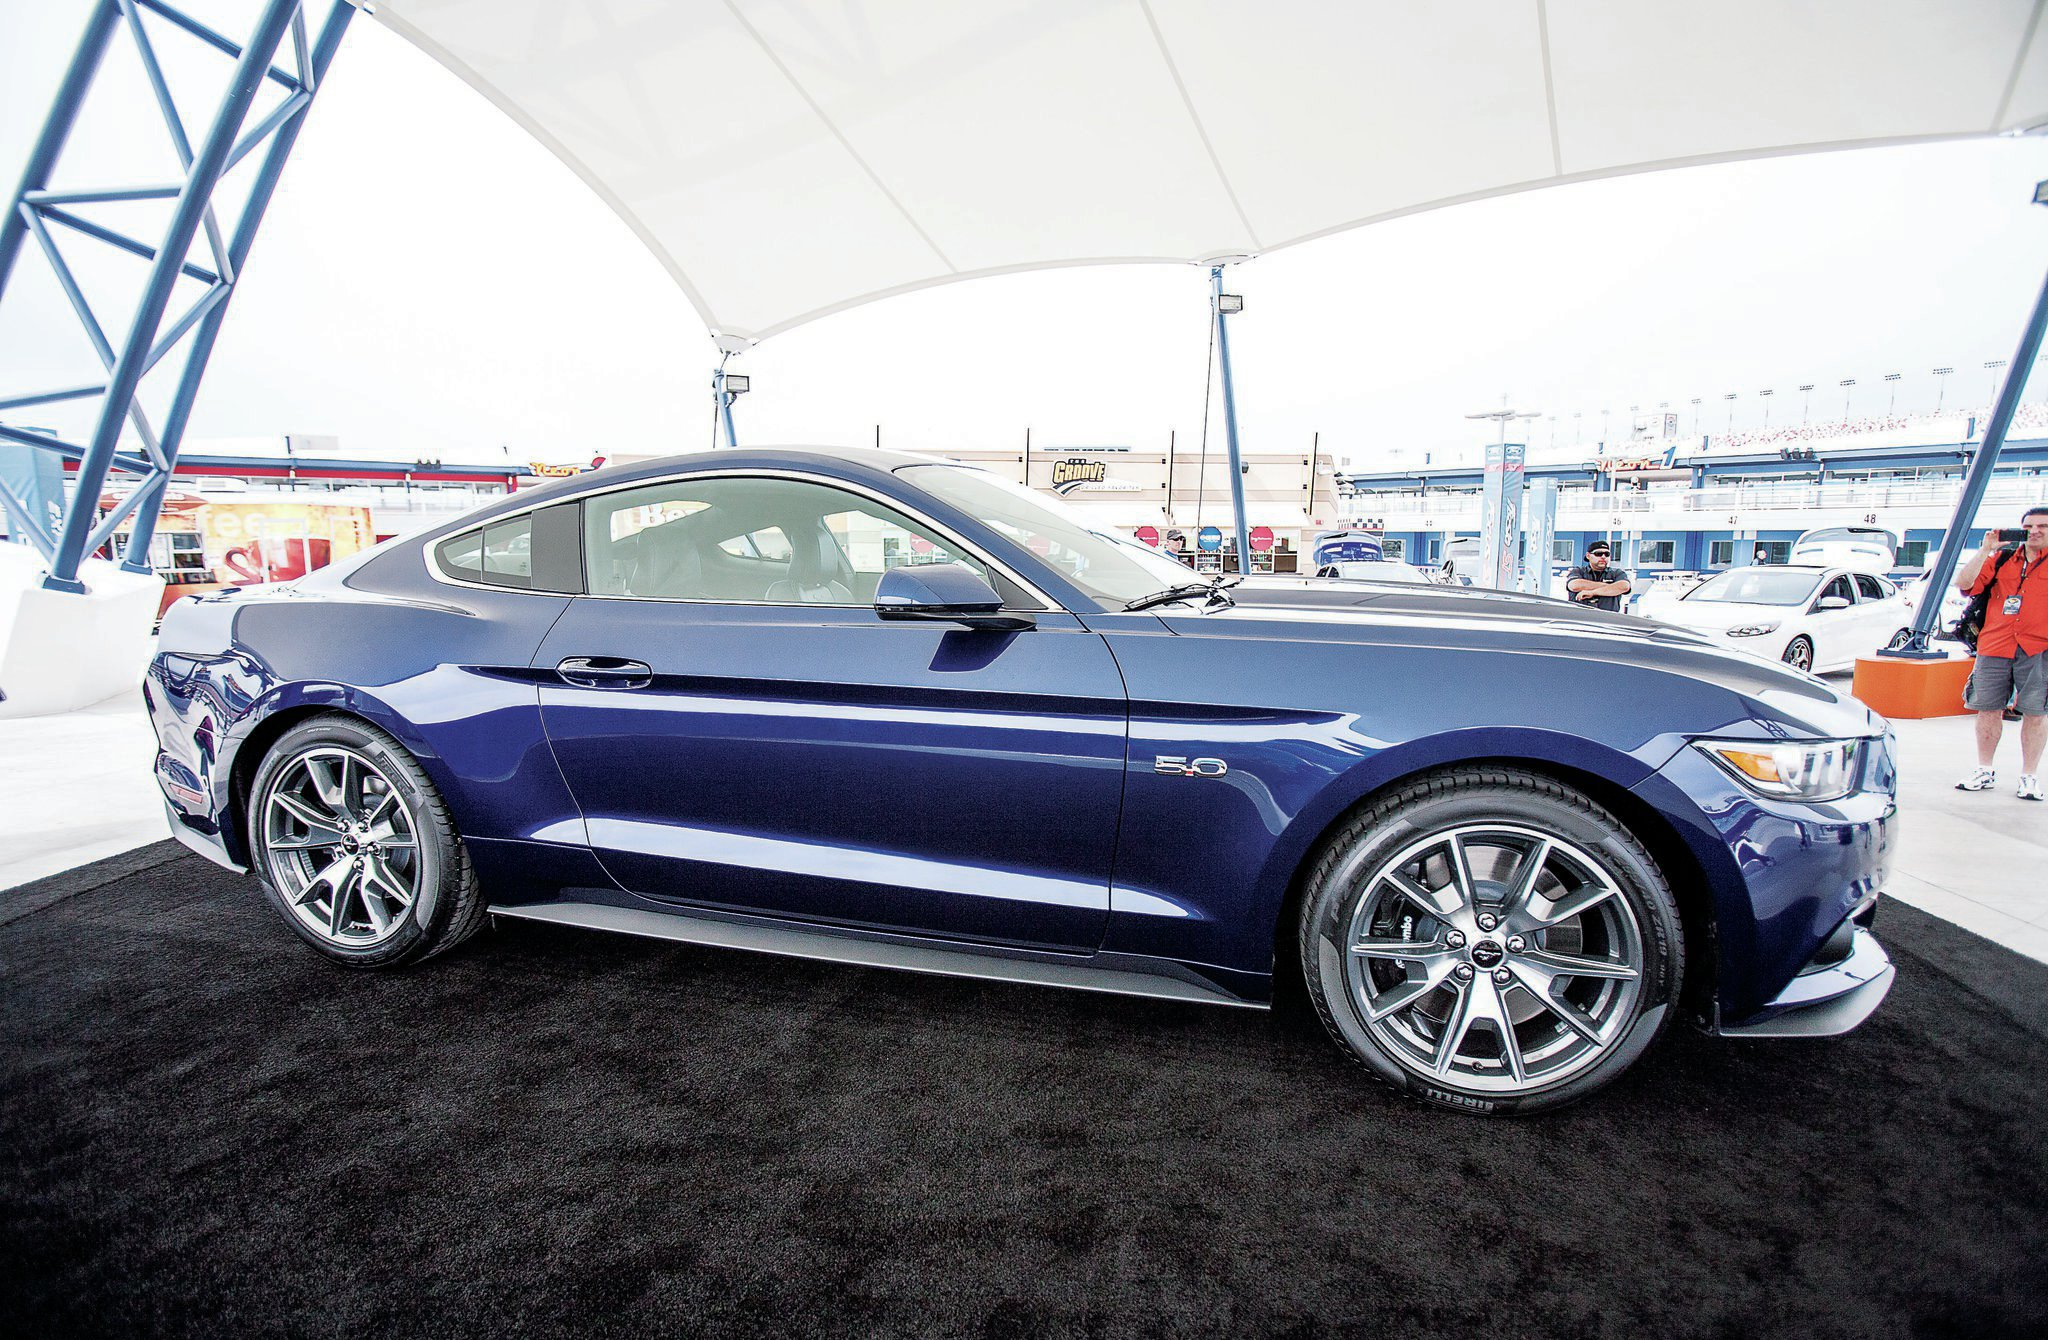 2018 Ford Mustang FR500 photo - 1